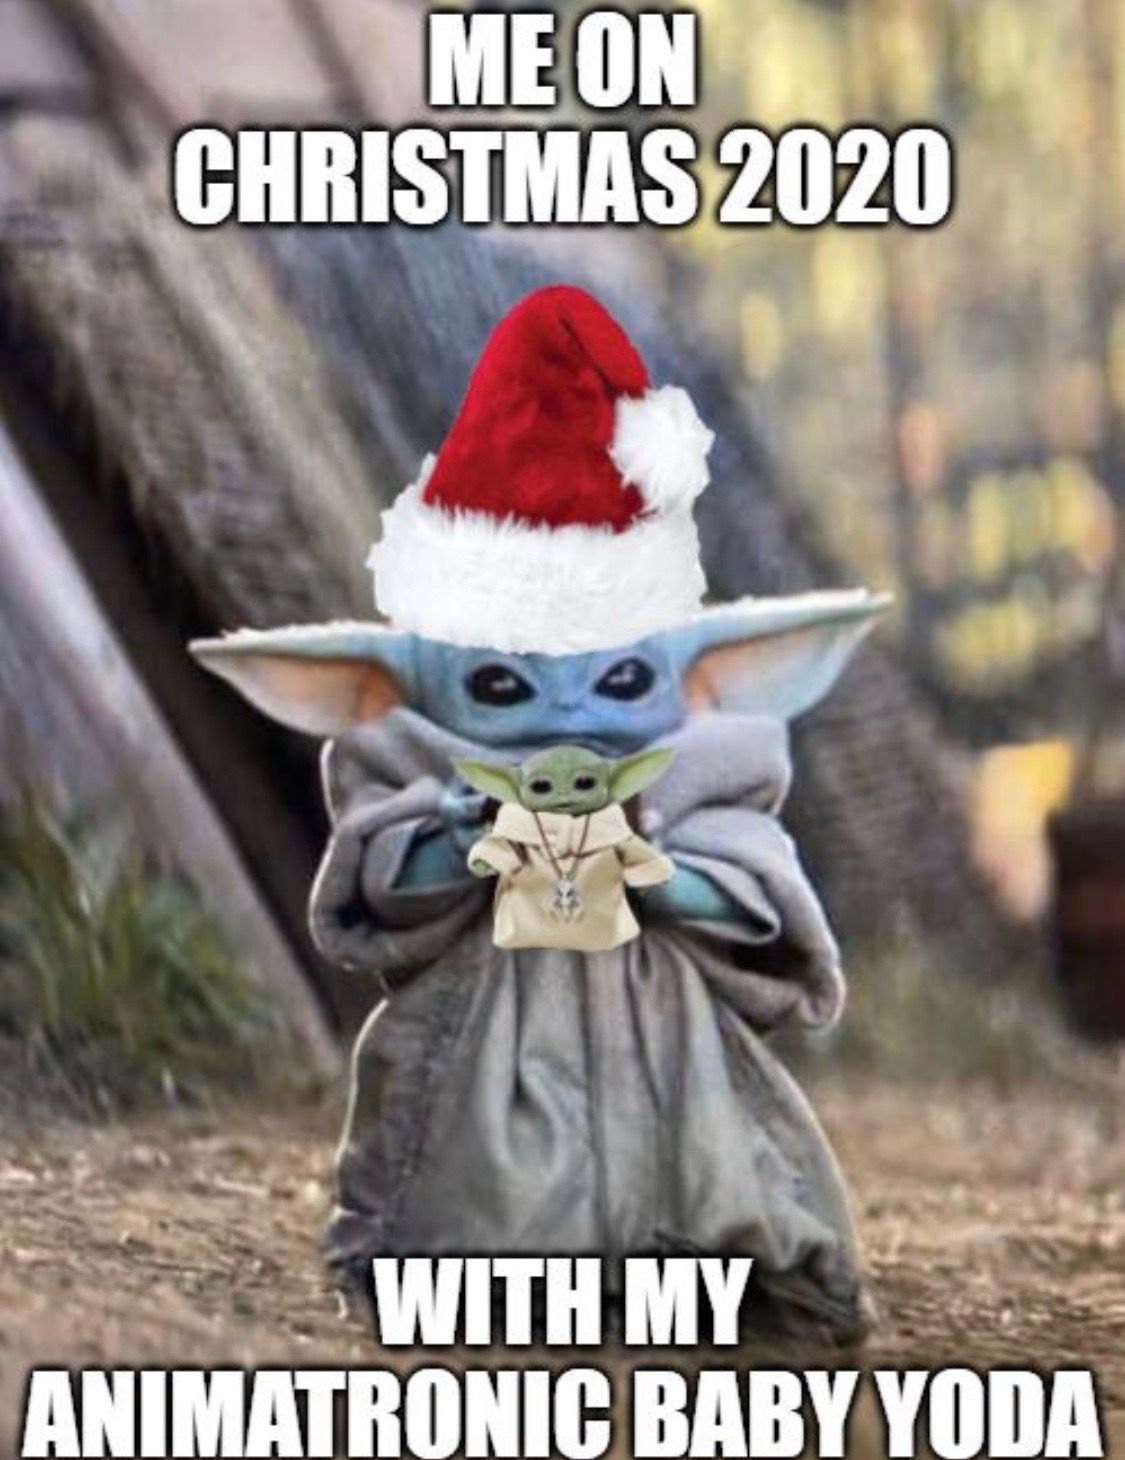 Pin by Brittany Subias on Mando Fando in 2020 Yoda meme